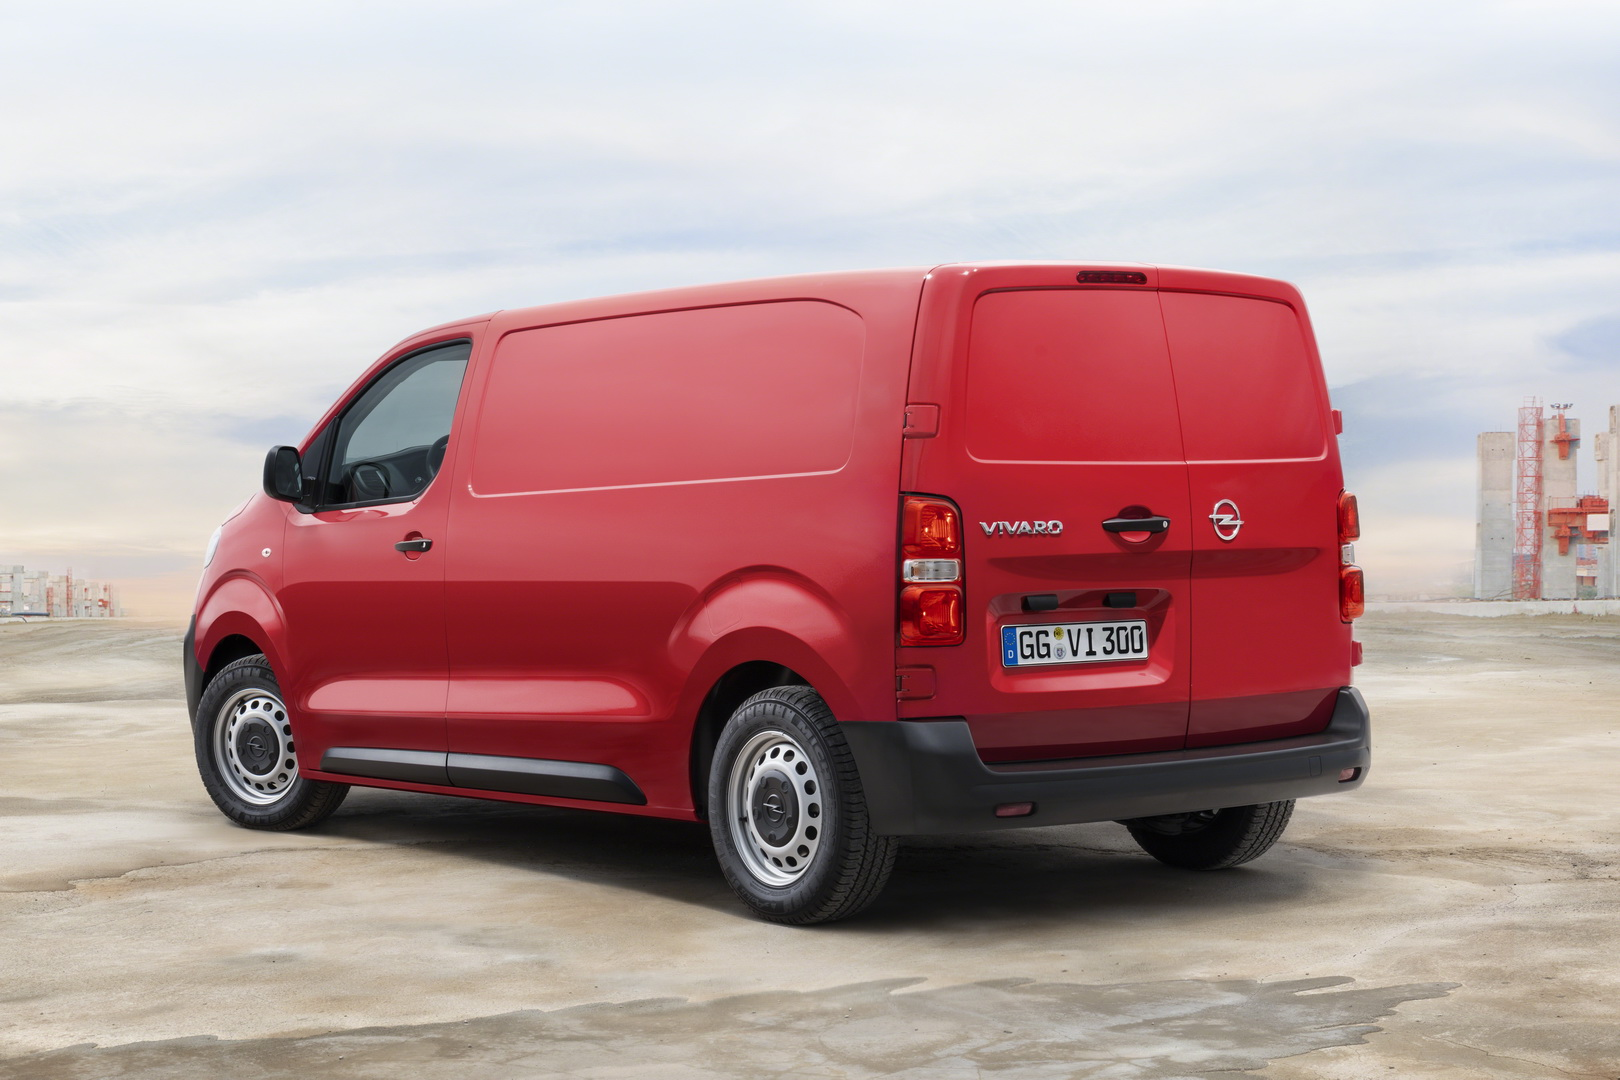 82 All New 2020 Opel Vivaro Redesign and Concept